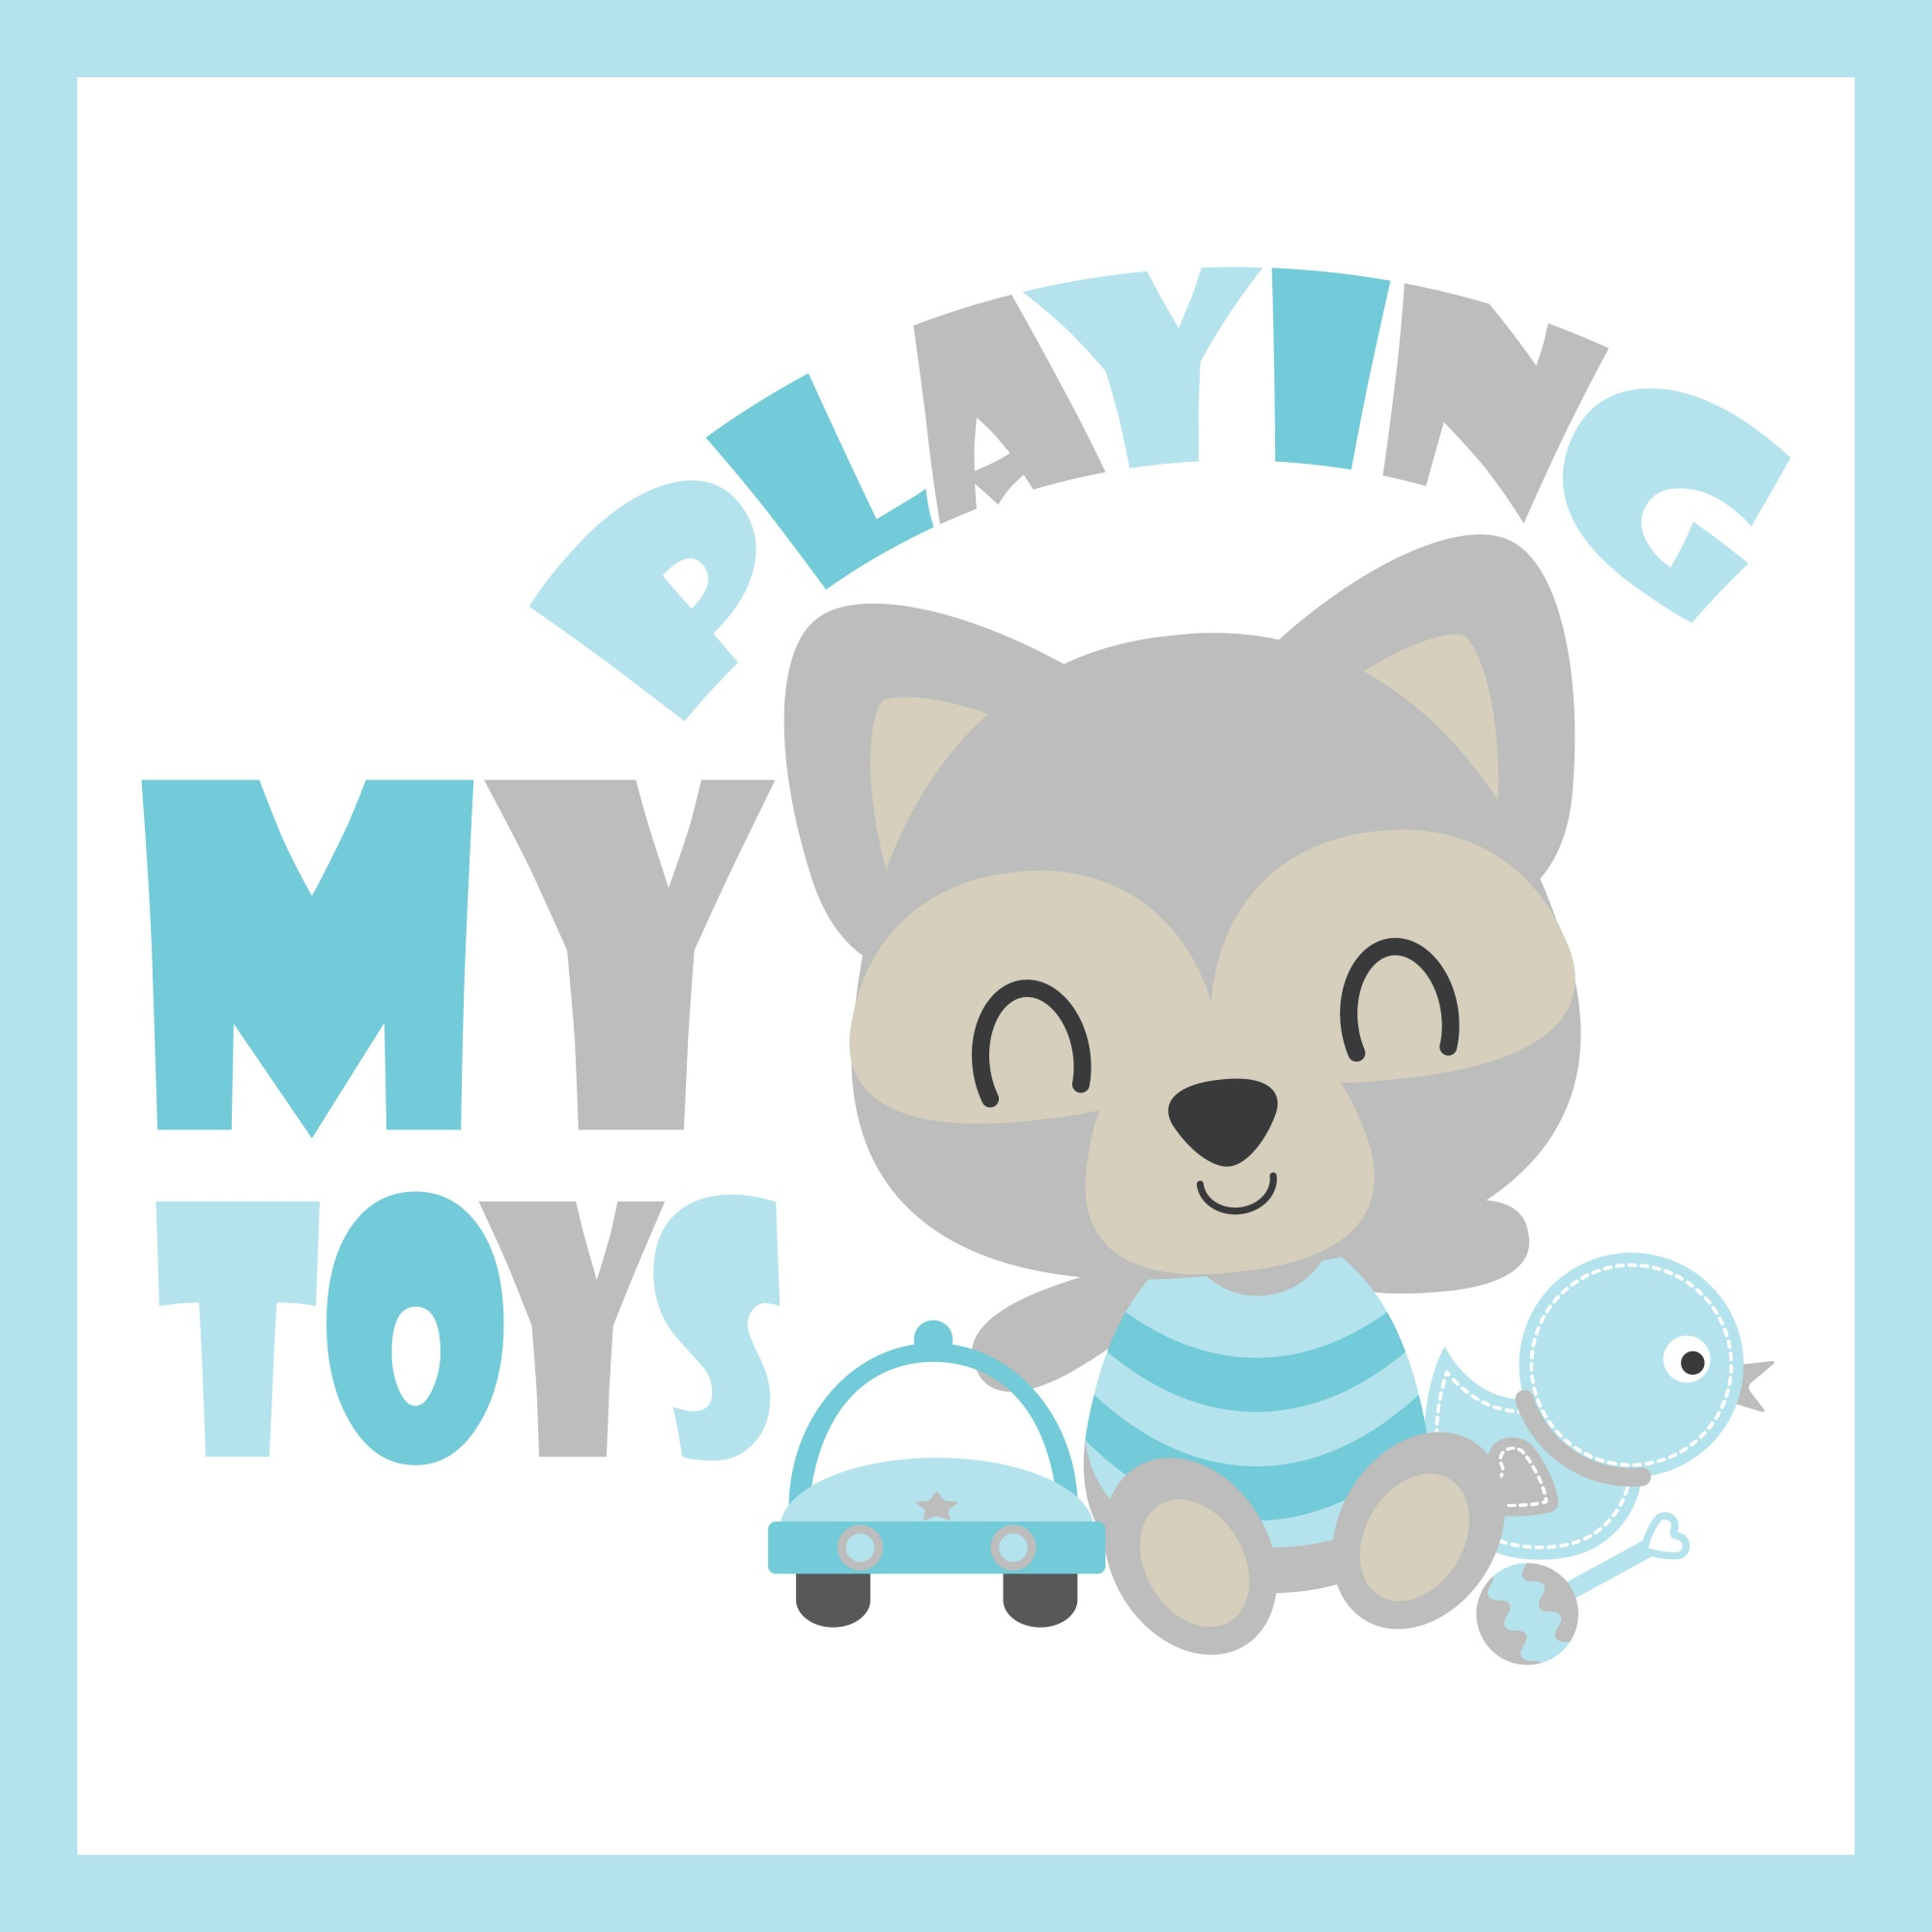 Cute baby raccoon plays car and duck toys vector cartoon illustration for baby shower card design, postcard, and wallpaper